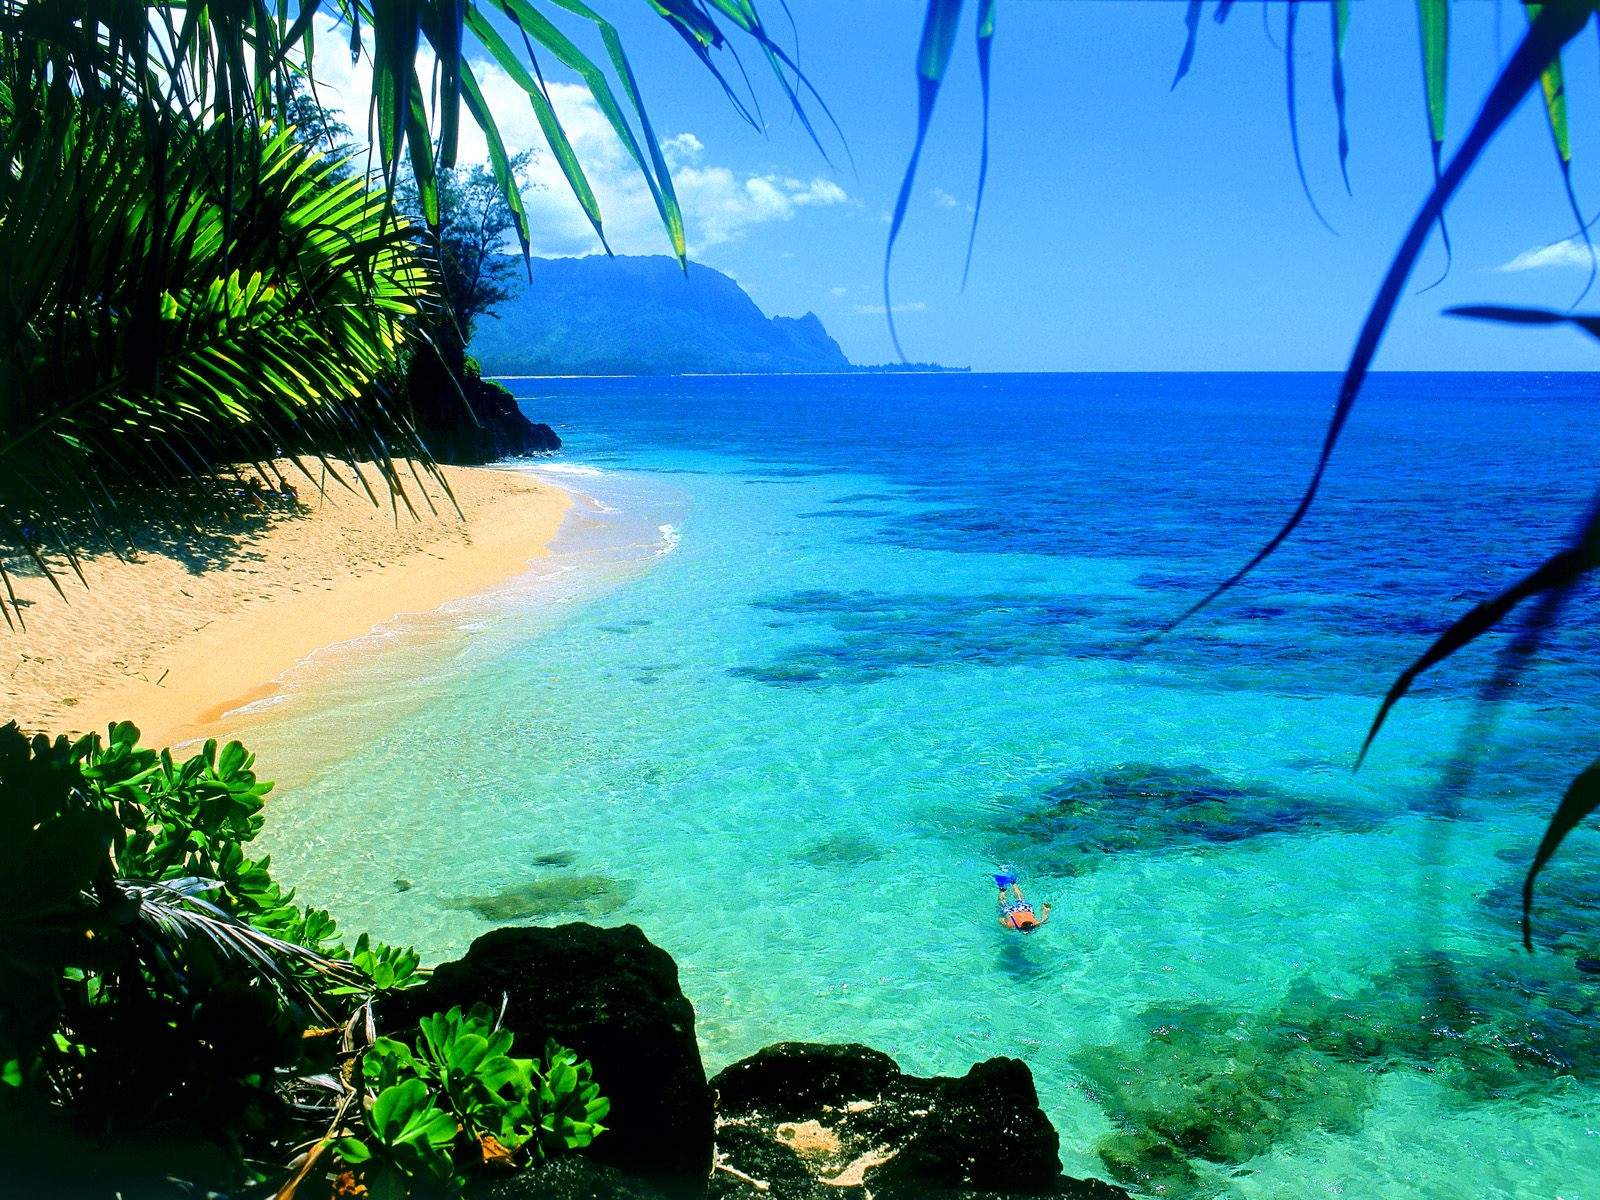 download hawaii beaches wallpaper which is under the beach wallpapers 1600x1200